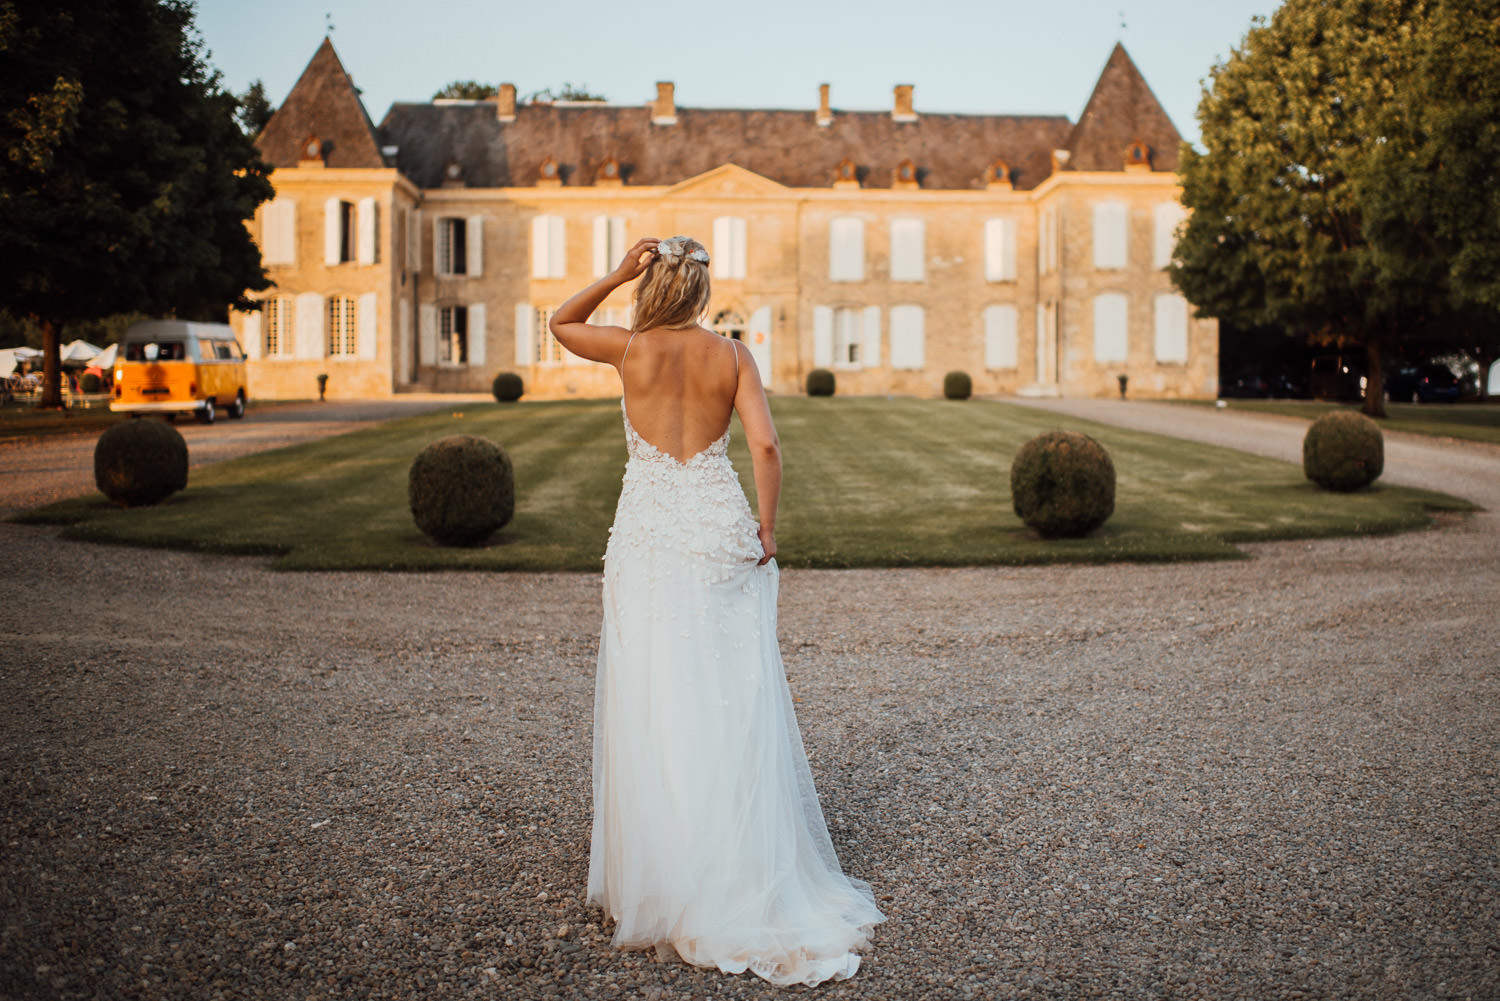 Charlie brear wedding dress at Chateau de Lacoste Wedding